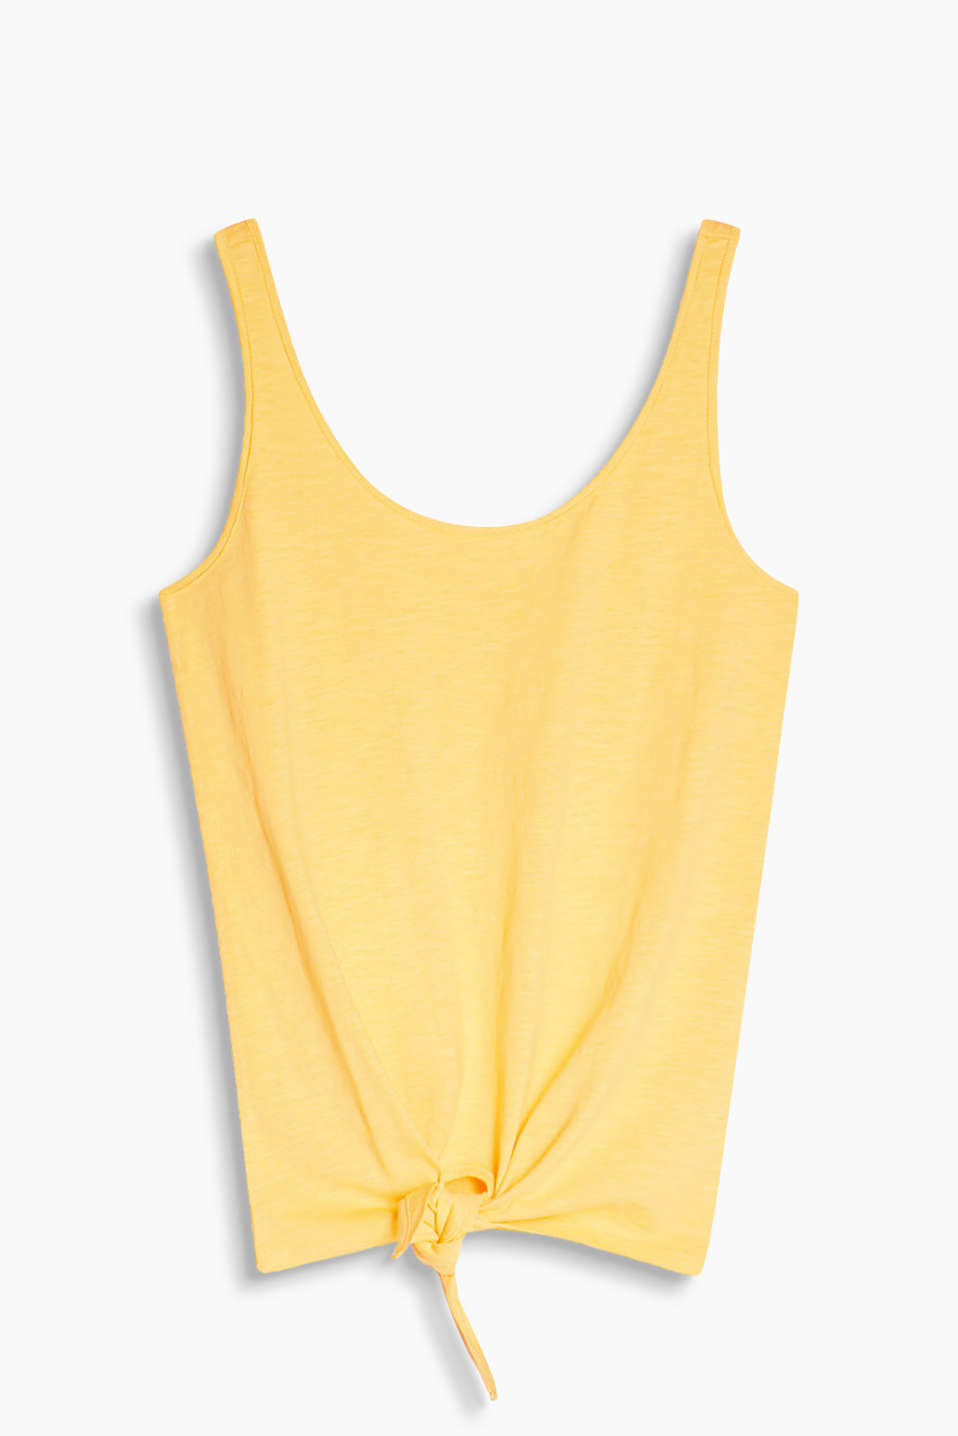 Soft vest with a knot detail and a low U-neckline